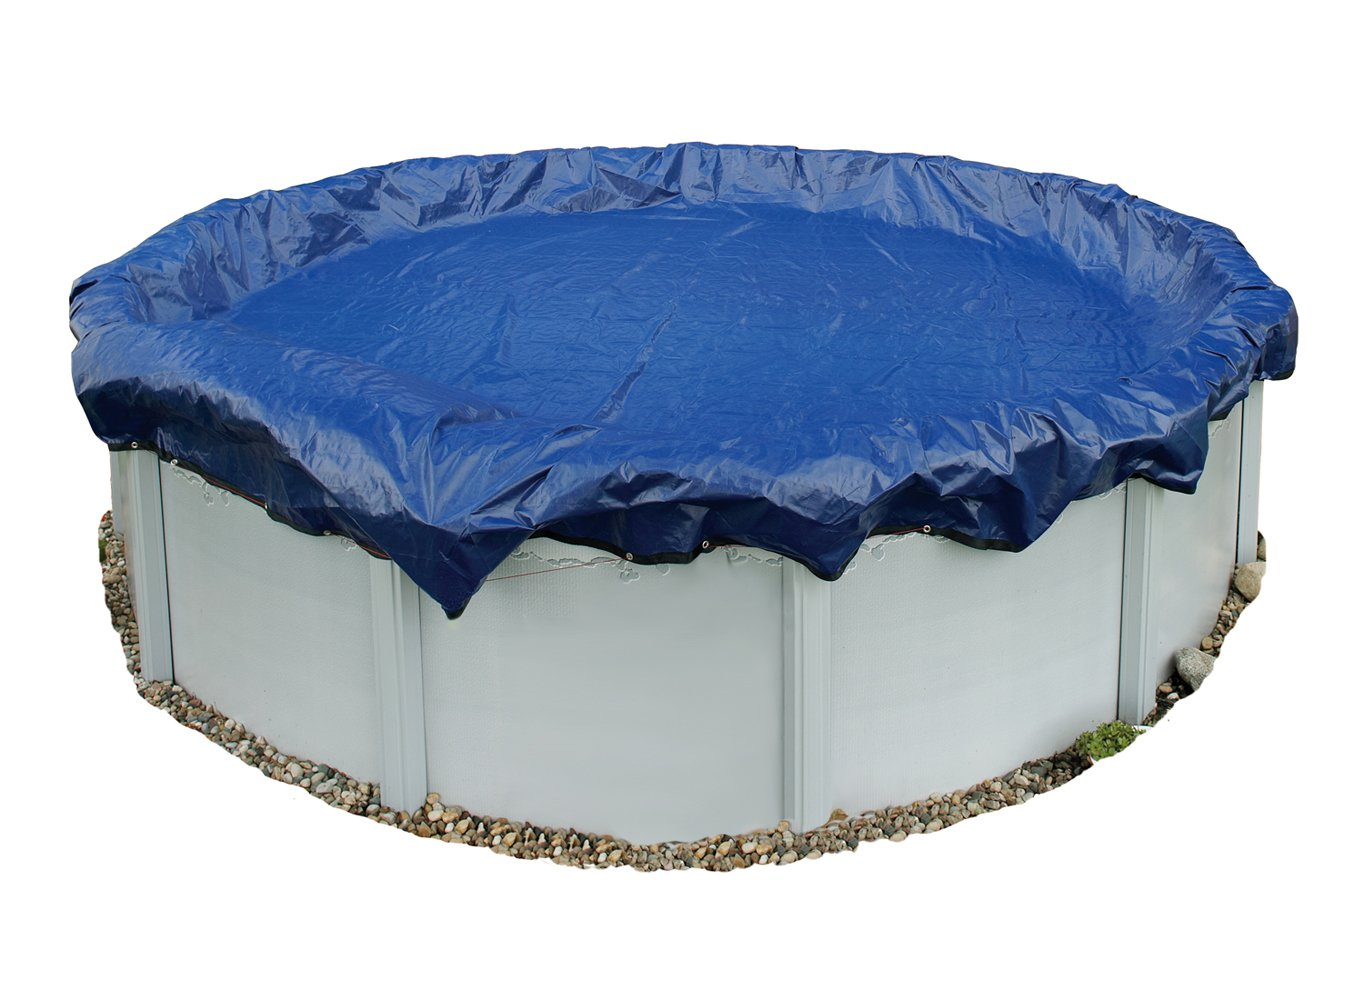 Blue Wave Gold 15-Year 15-ft Round Above Ground Pool Winter Cover